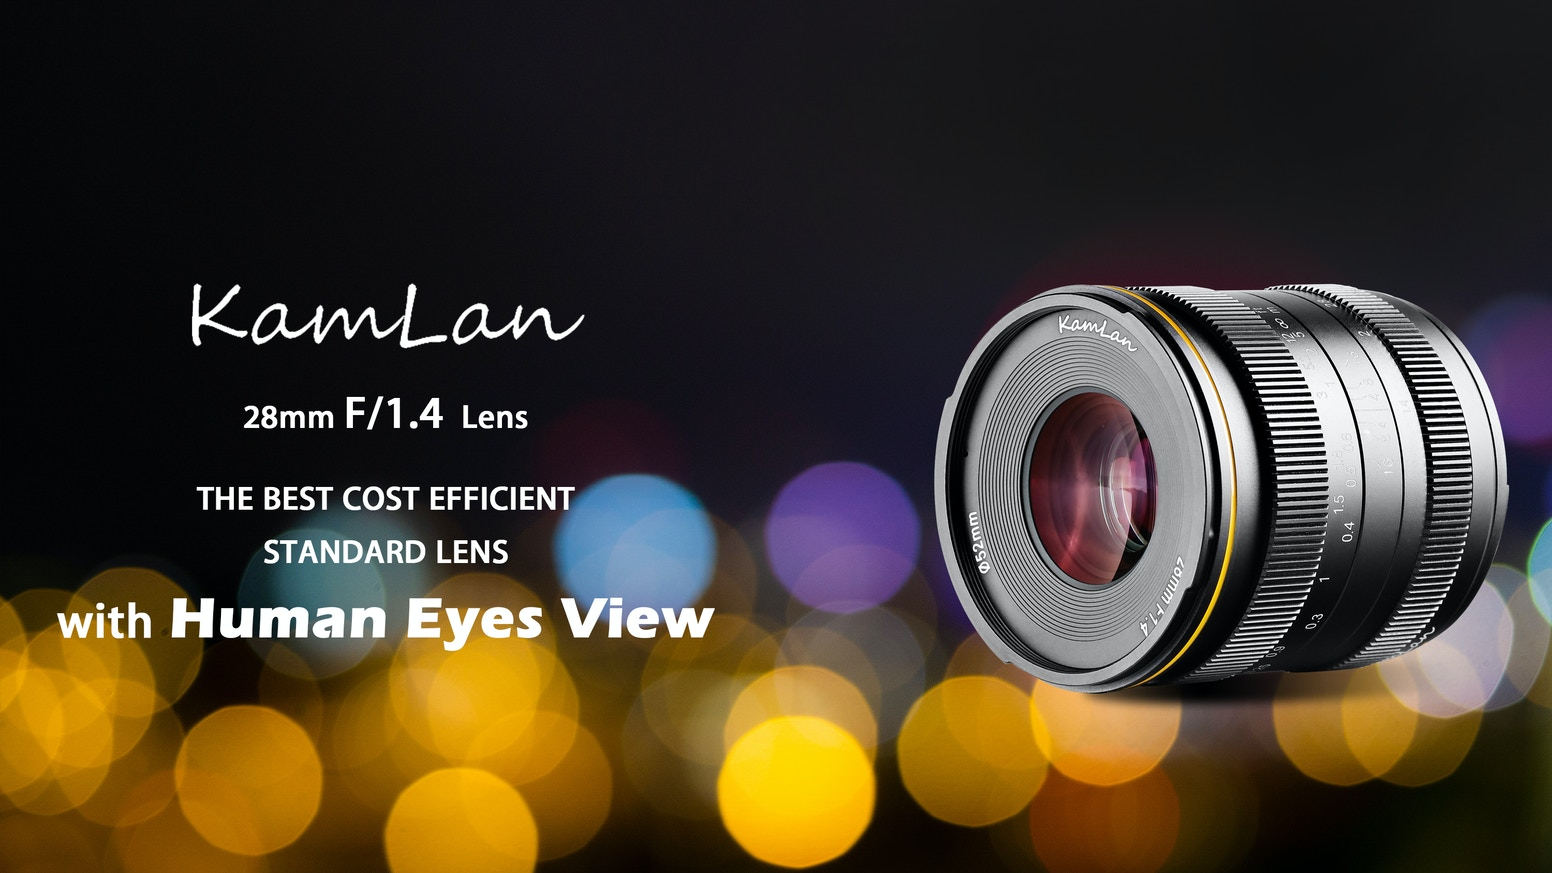 Recreate what your eyes see. Kamlan 28mm F/1.4 Prime Lens delivers superior optical quality along with super low chromatic aberration